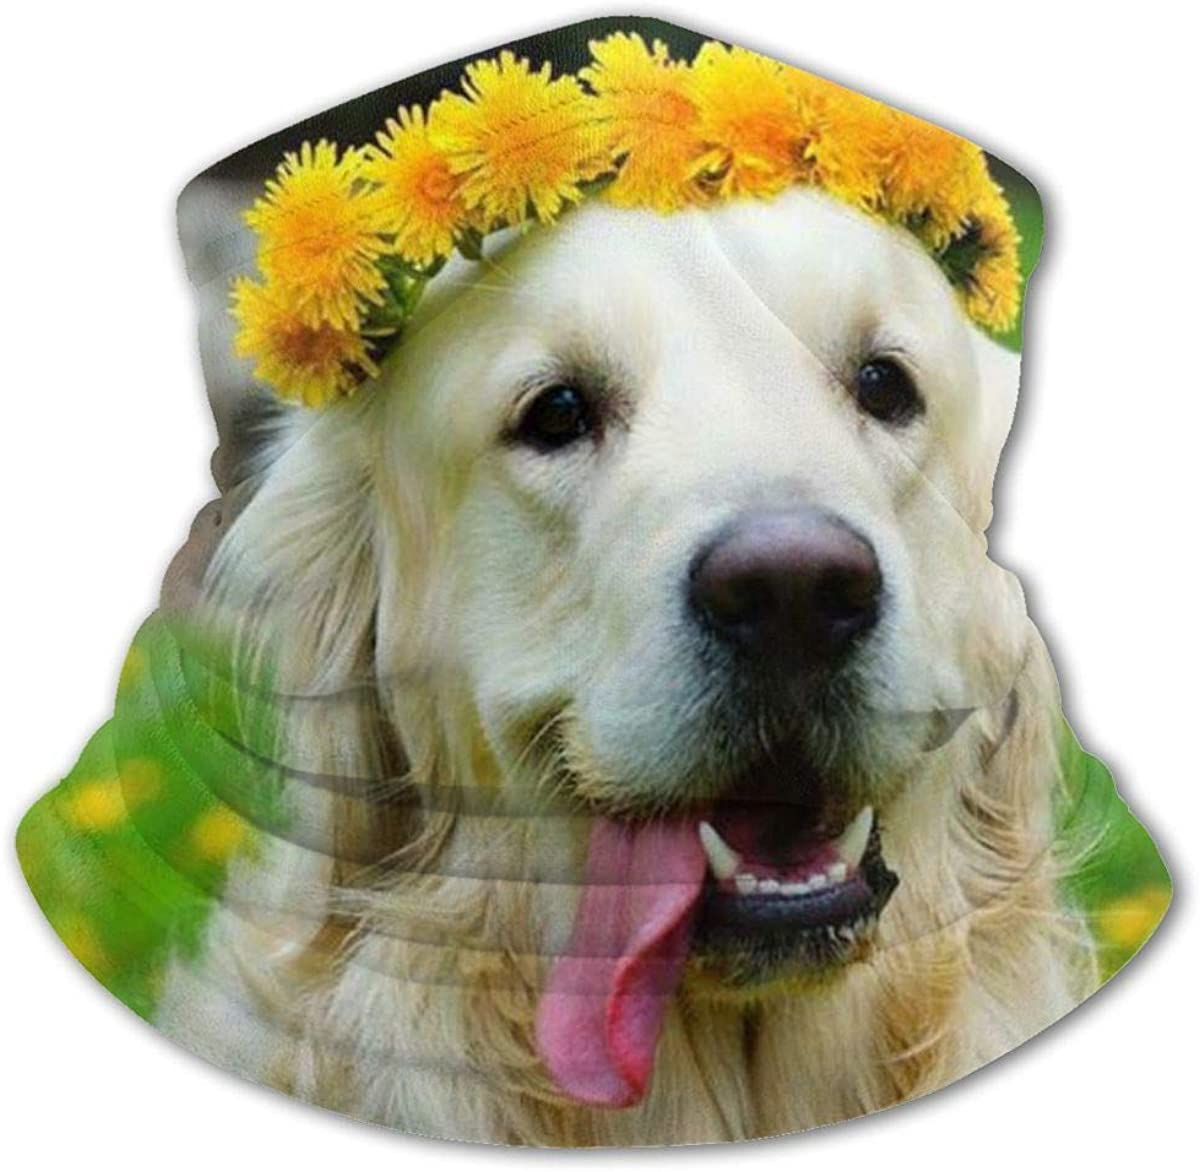 Golden Retriever Headwear For Girls And Boys, Head Wrap, Neck Gaiter, Headband, Tenn Fishing Mask, Magic Scarf, Tube Mask, Face Bandana Mask For Camping Running Cycling